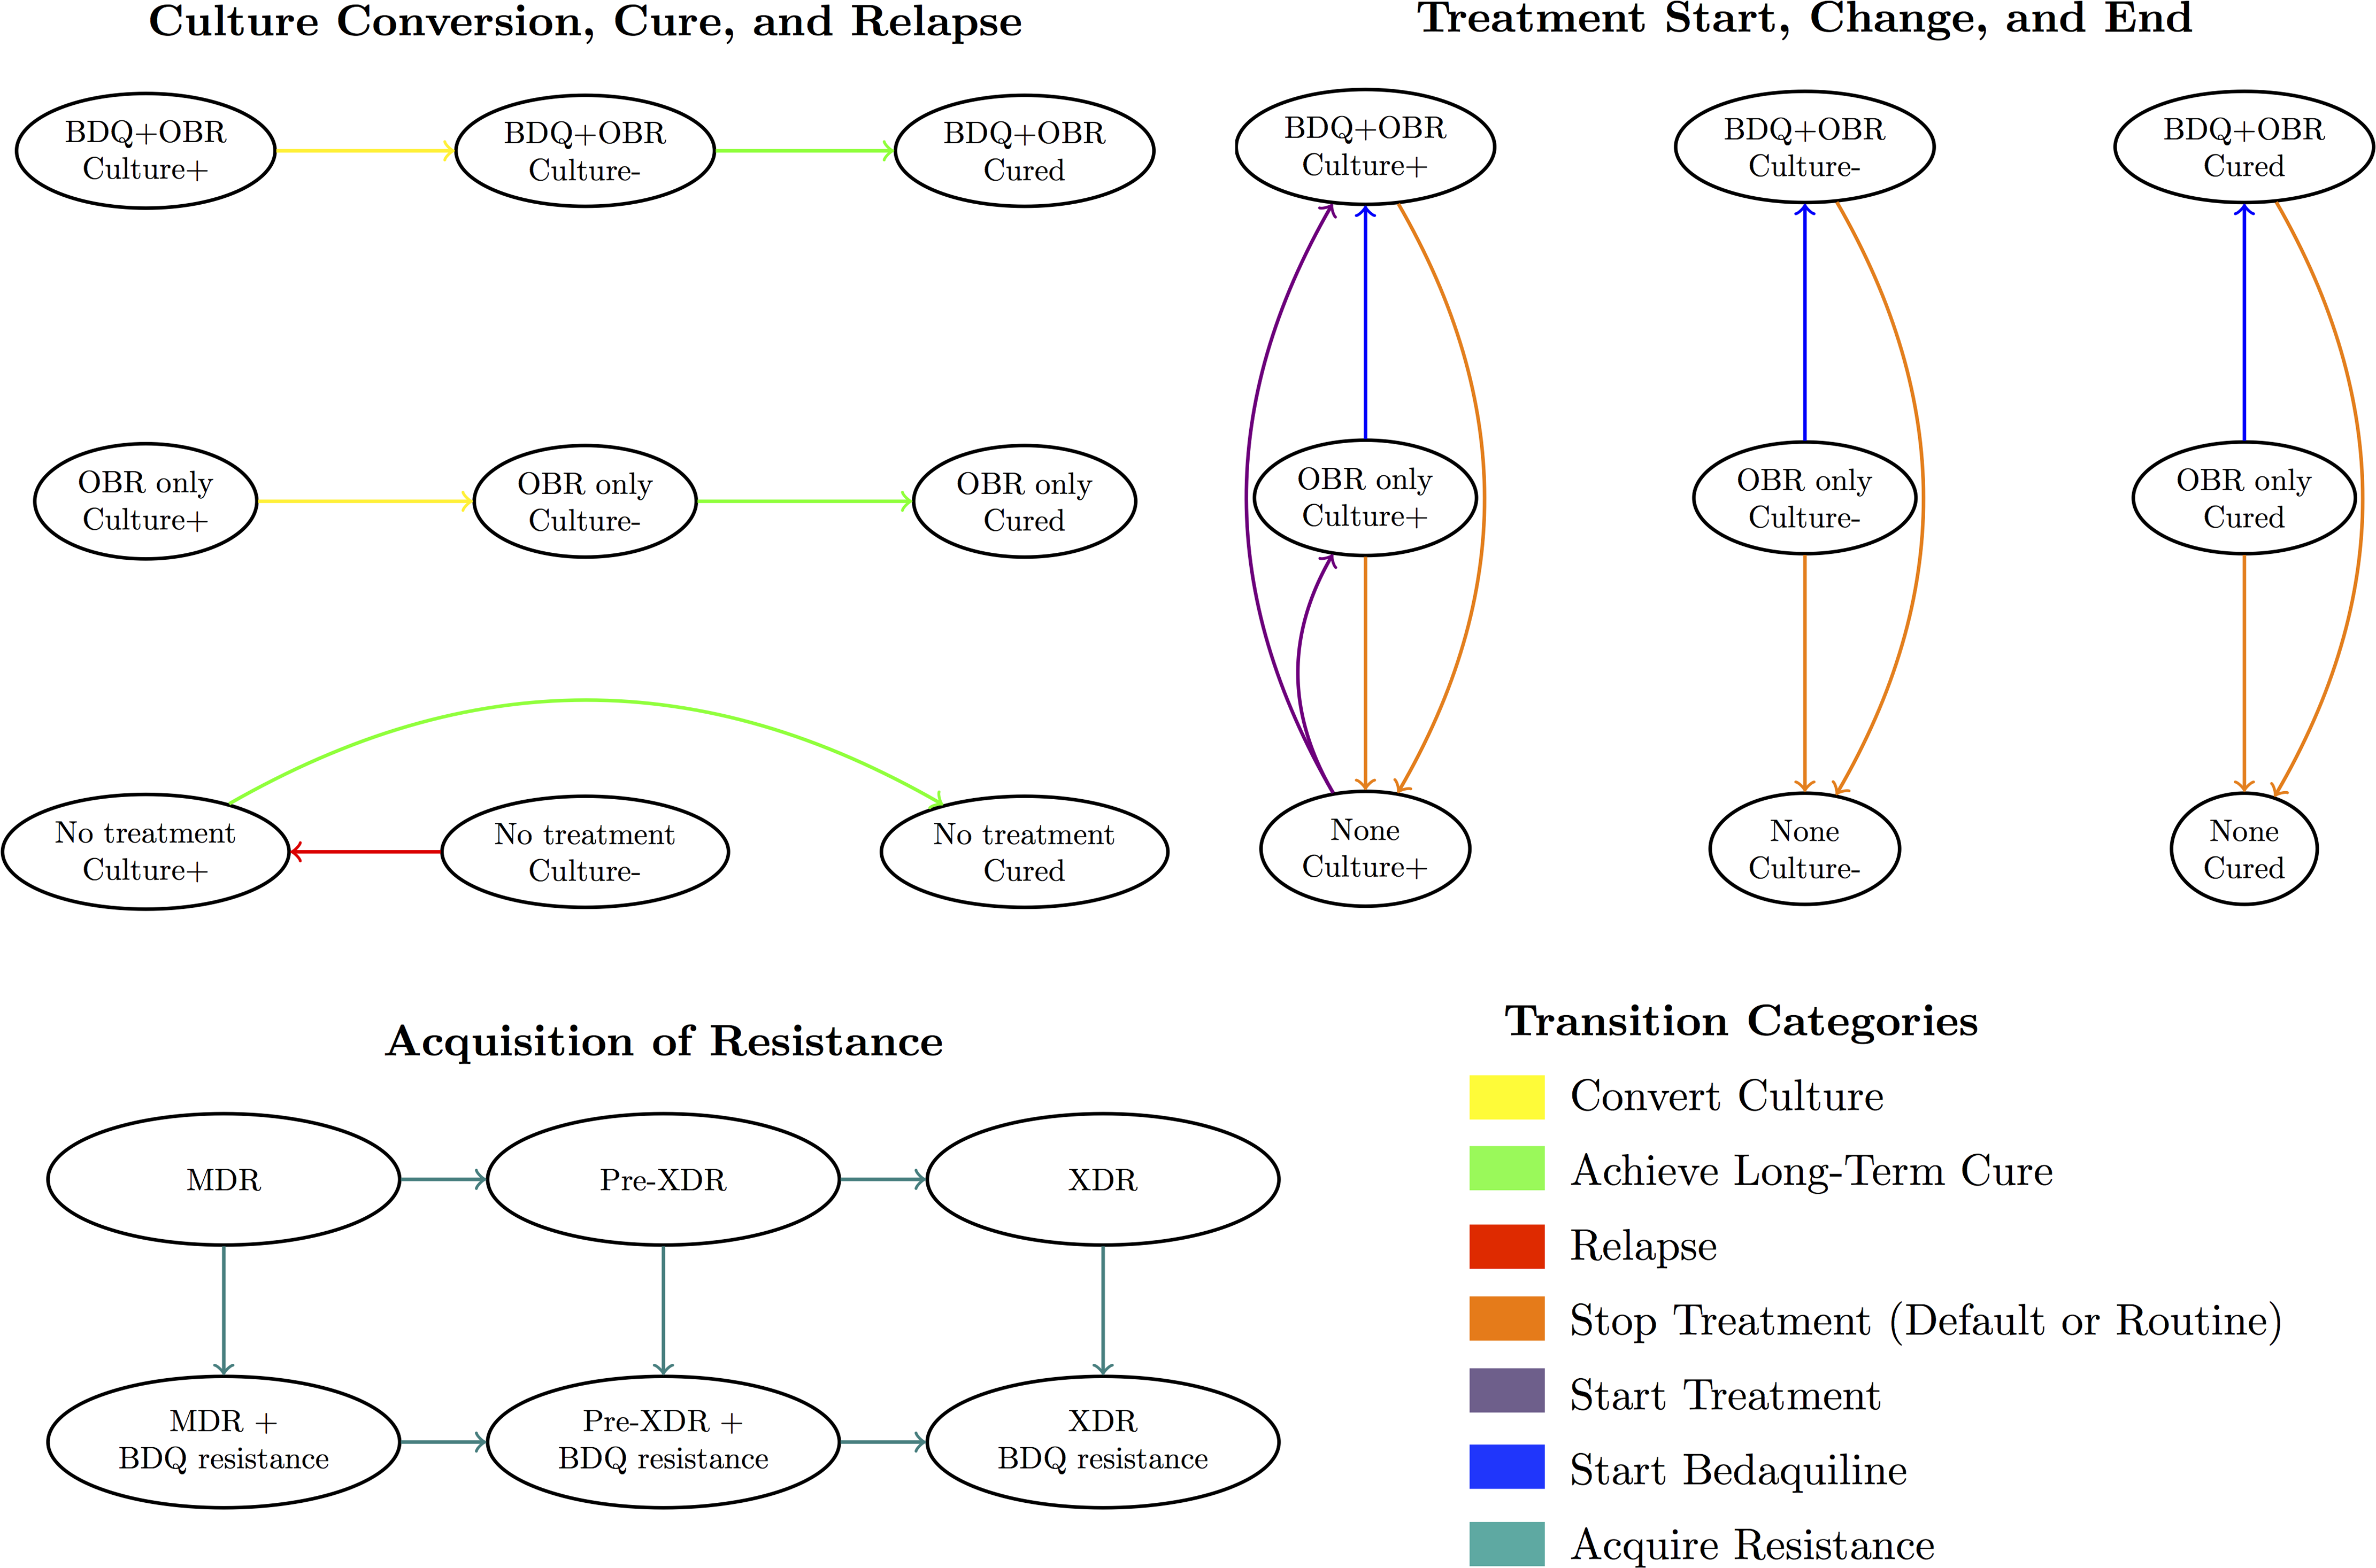 Overview of model health states and transitions.